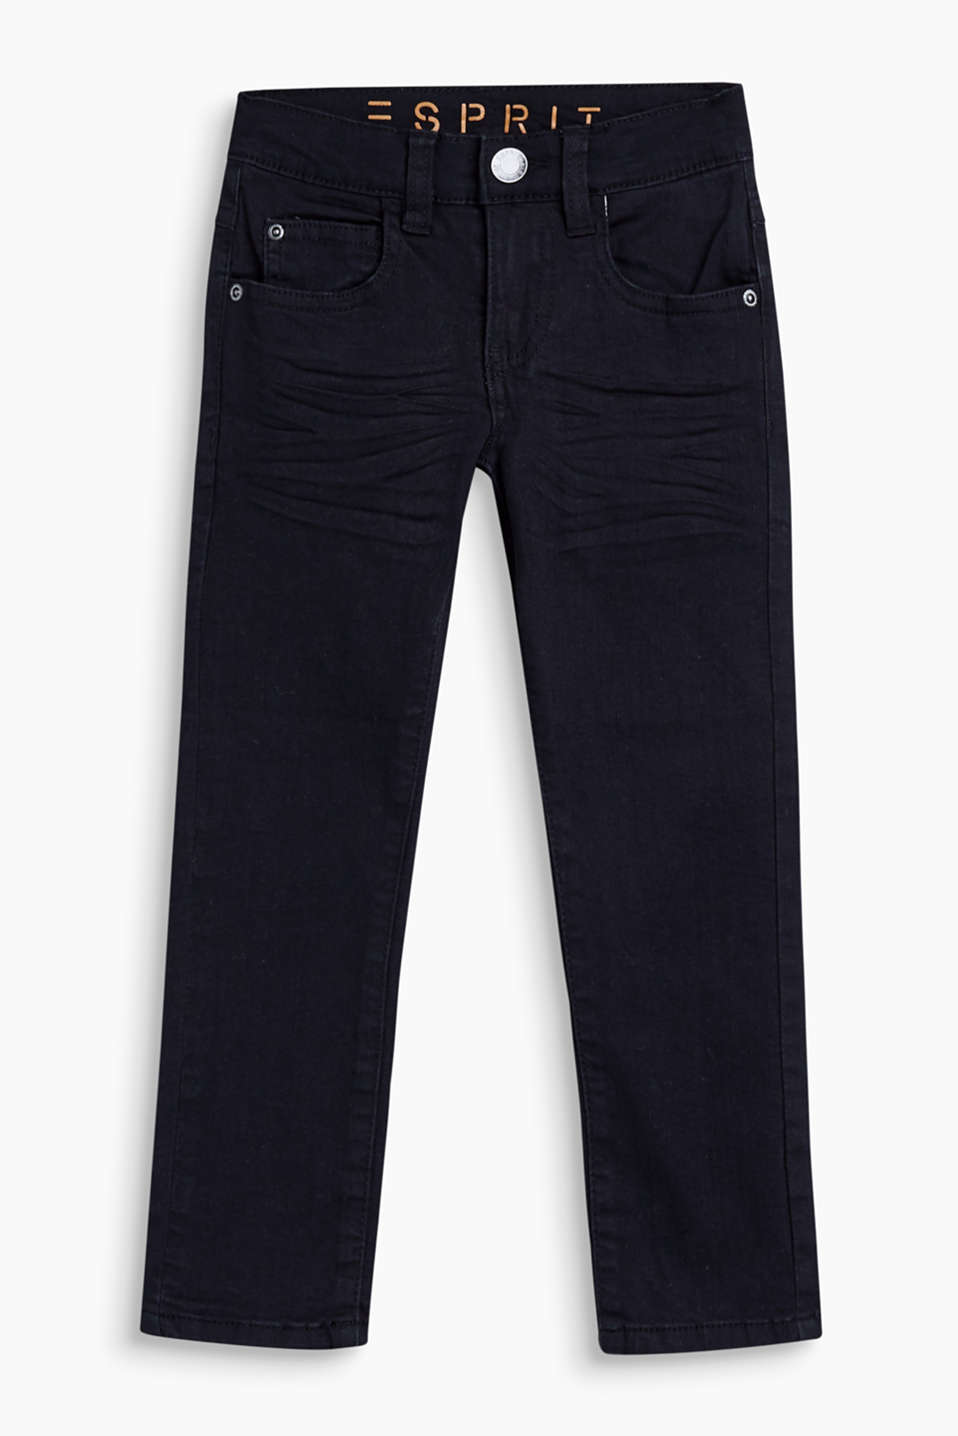 Esprit - 5-pocket-jeans met crinkle effects